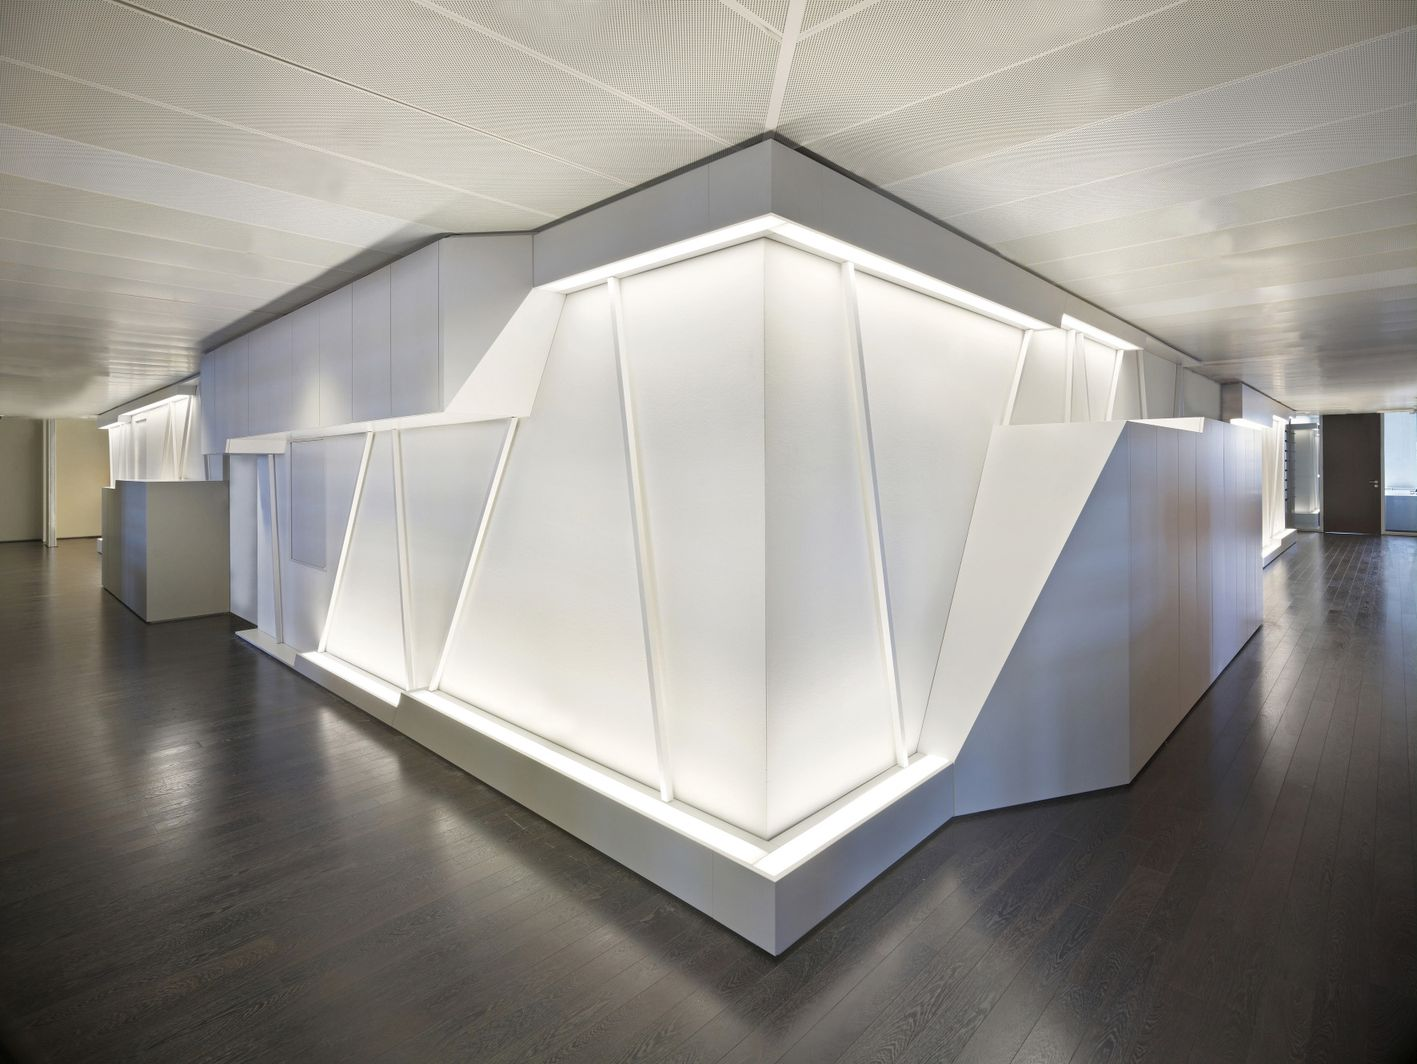 Akbank interior by dagli at lier d architecture for Architecture company